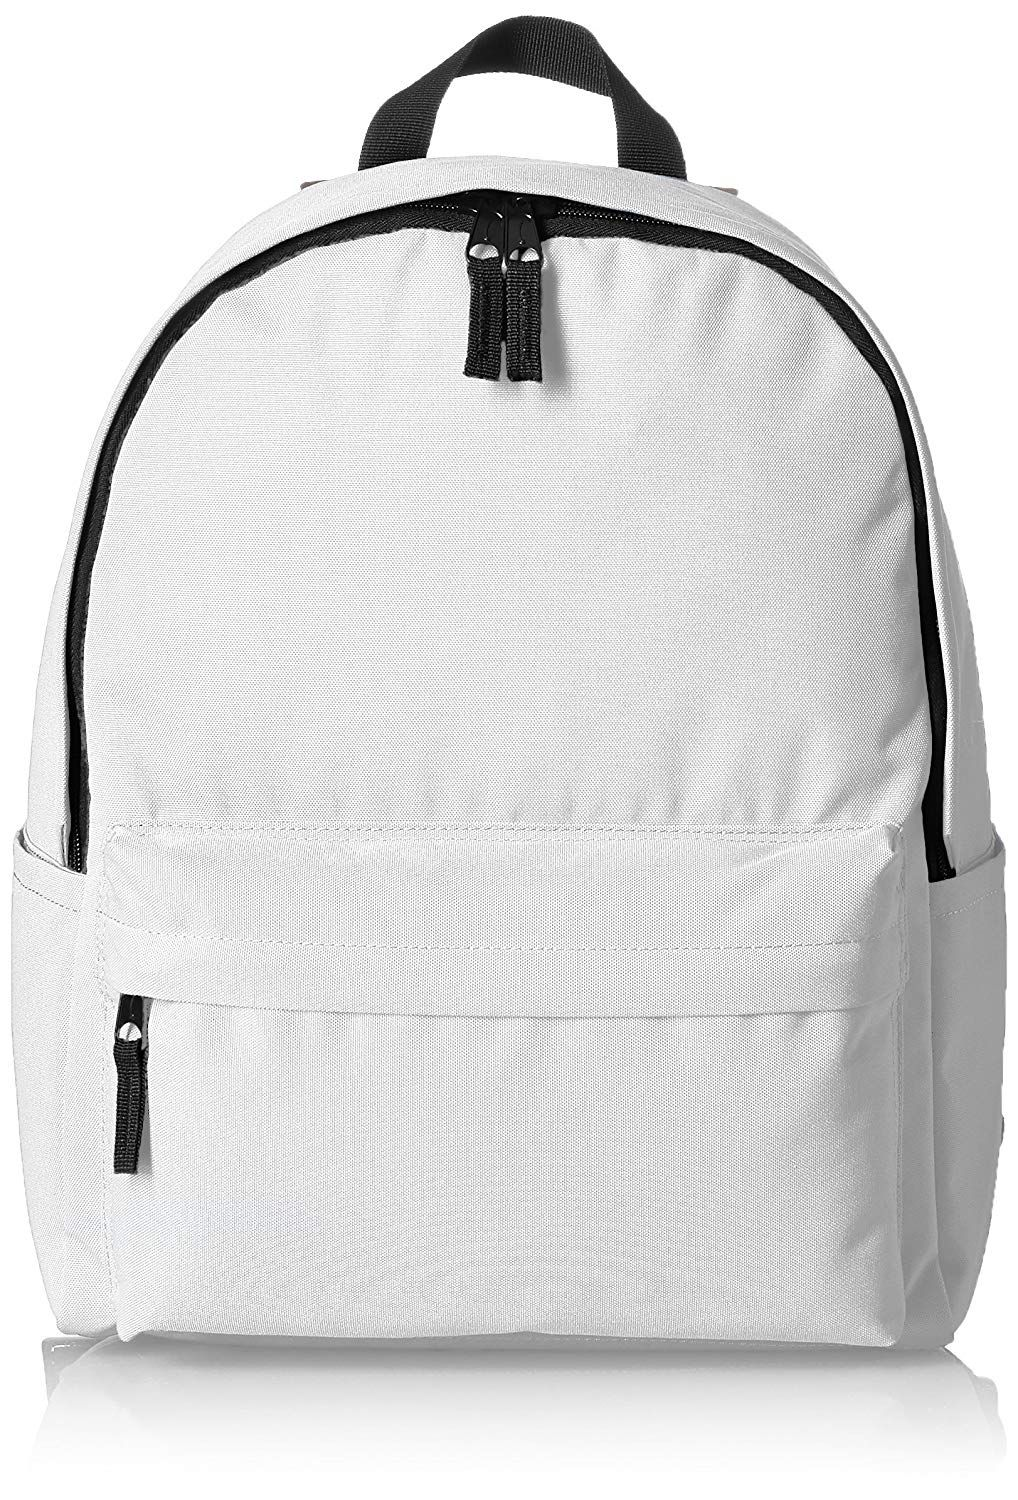 https://www.amazon.in/AmazonBasics-21-Ltrs-Classic-Backpack/dp/B013TGFDEY/